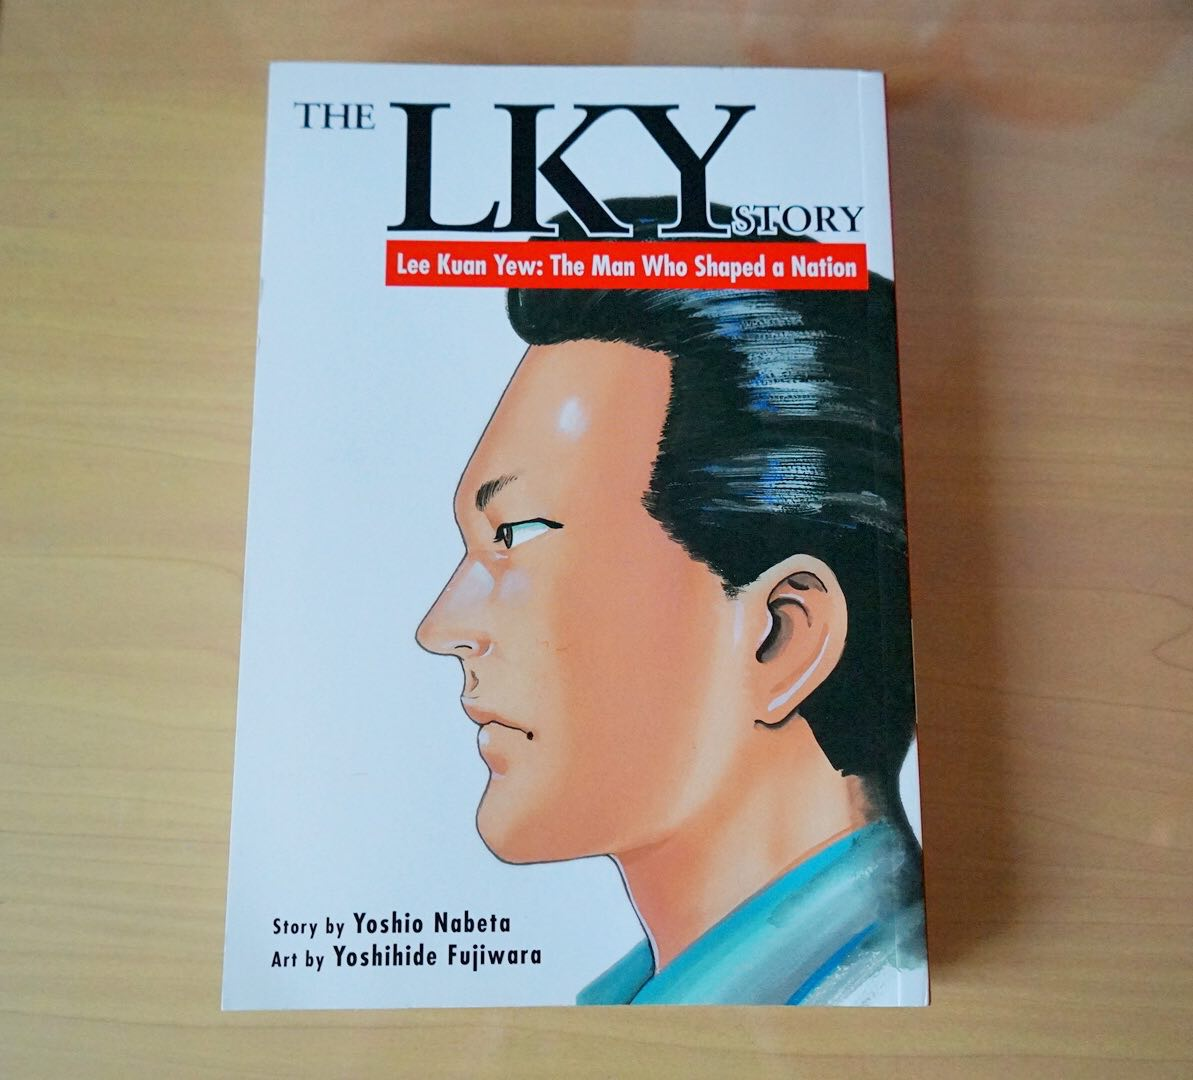 the-lky-story-cover-aspirantsg